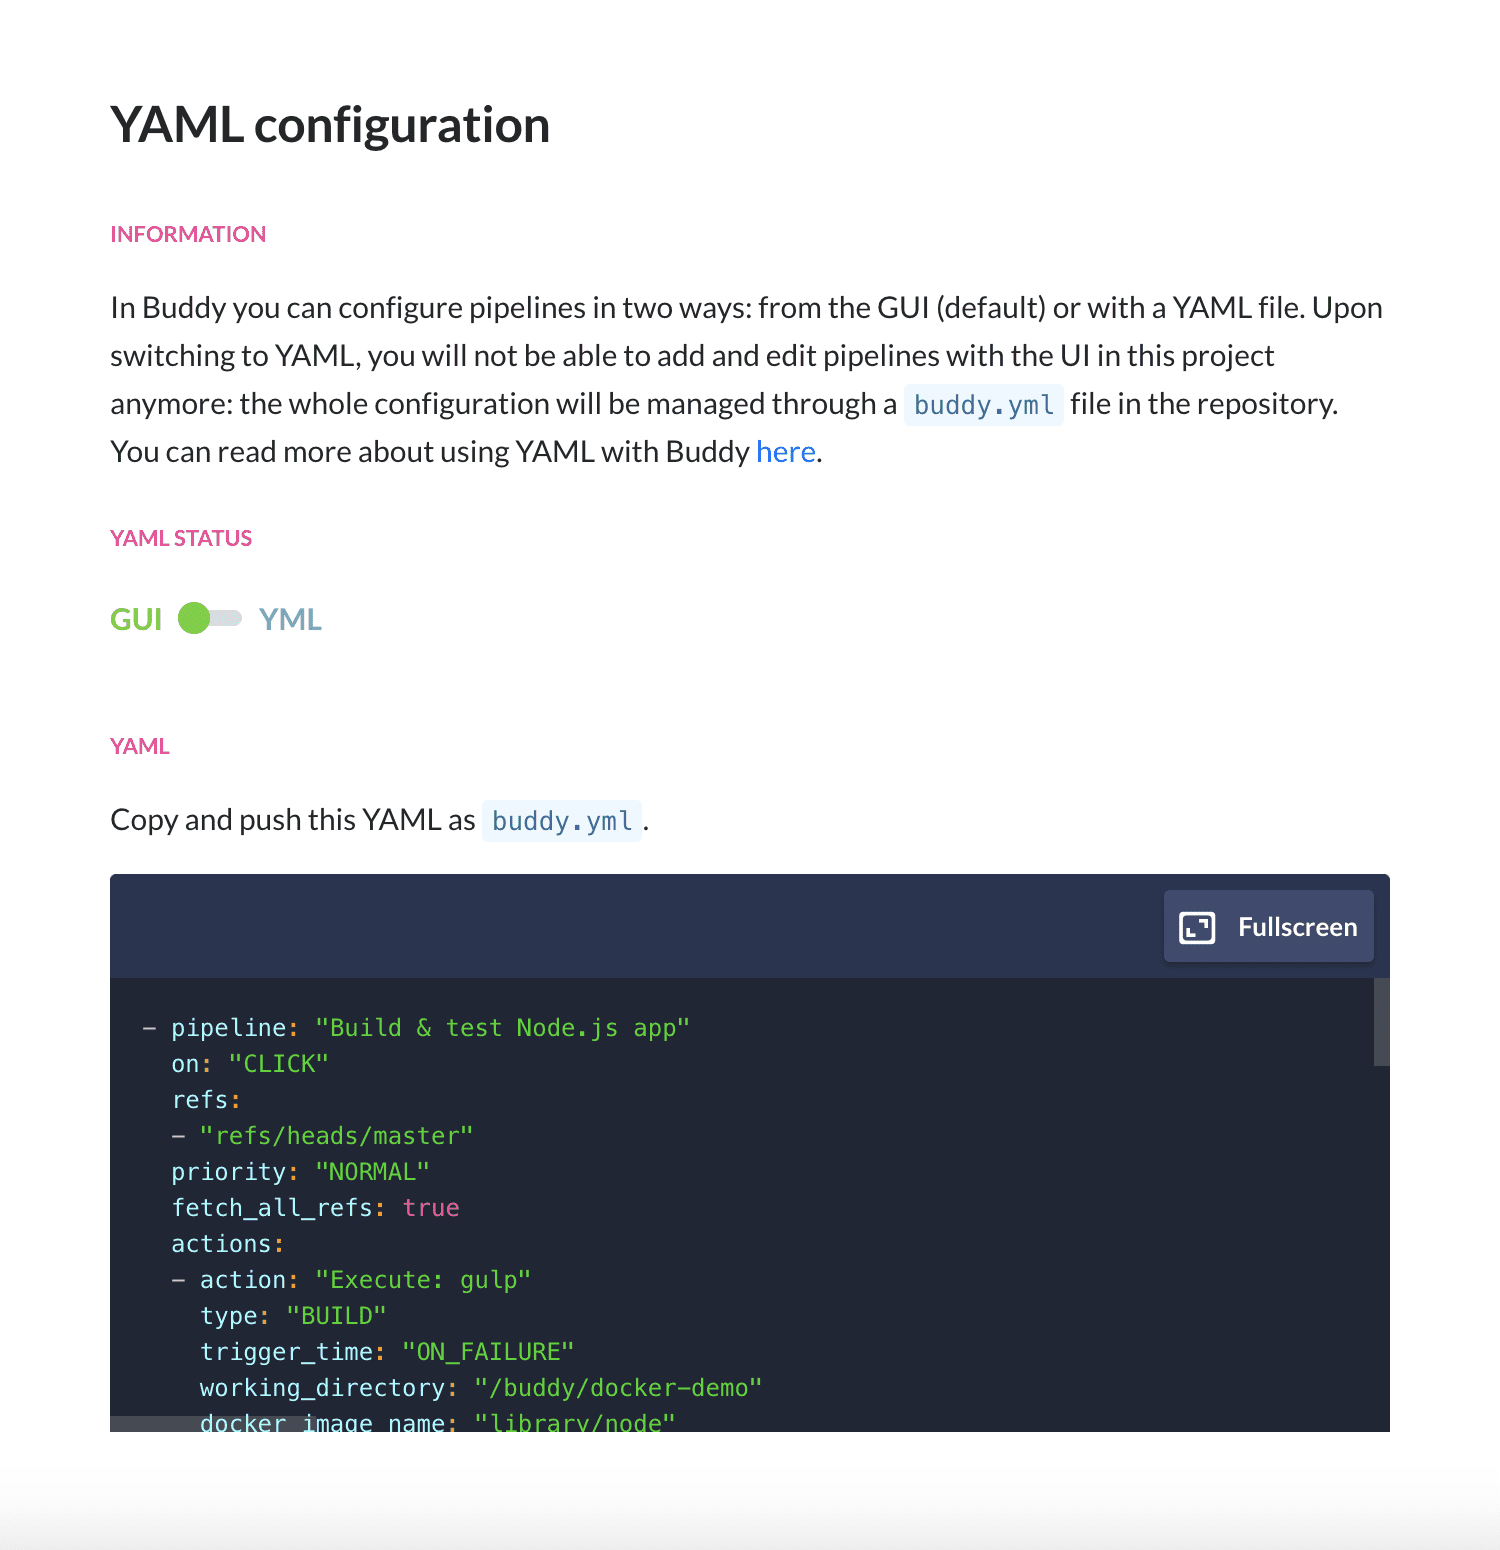 Switching YAML to GUI